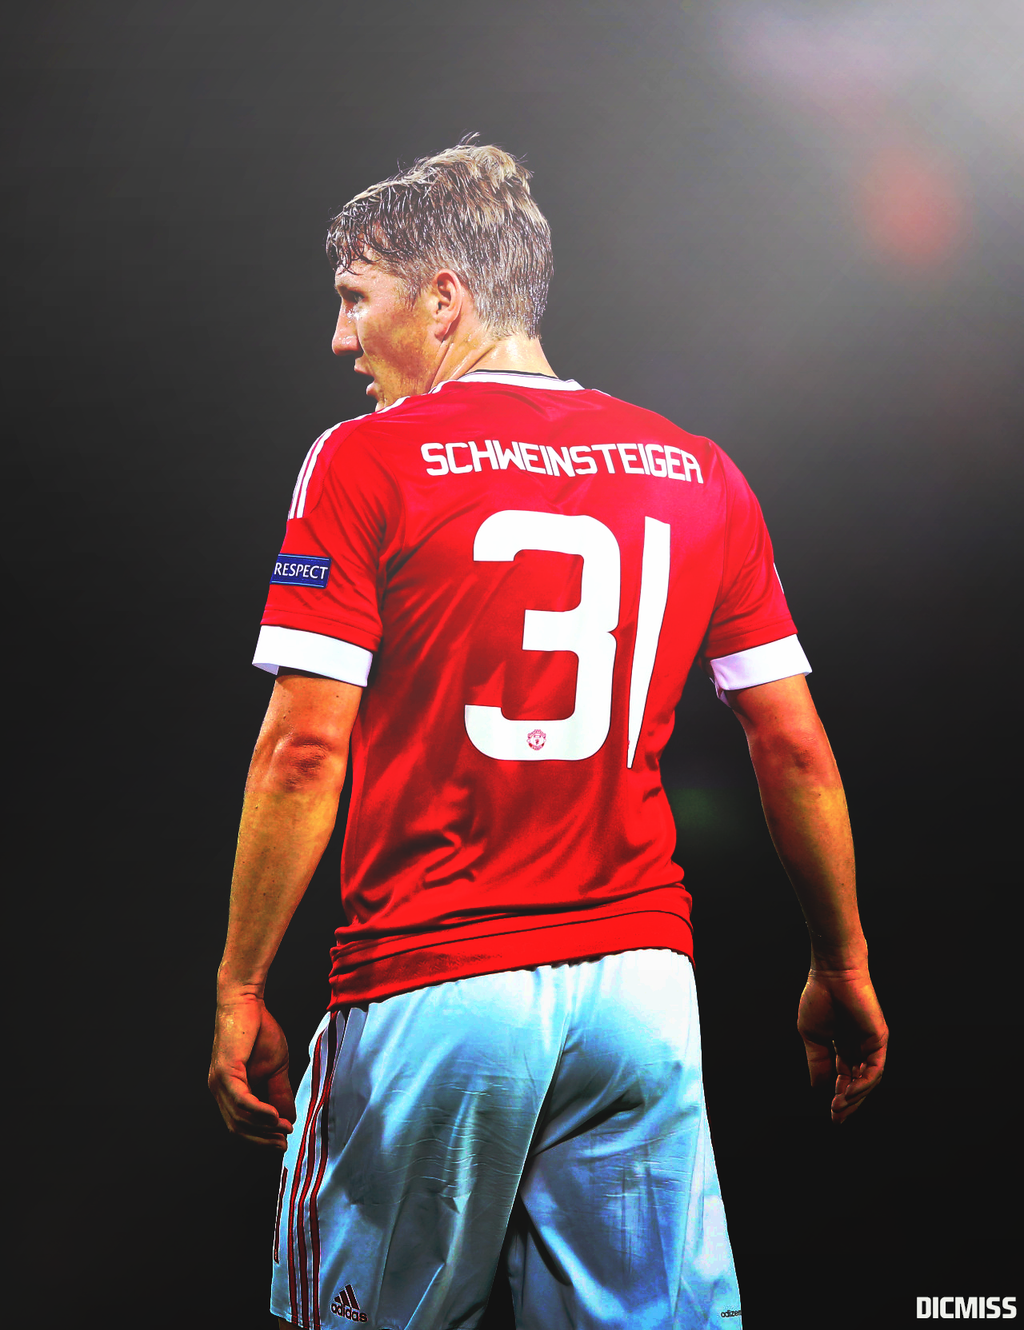 Bastian Schweinsteiger by Dicmiss on DeviantArt